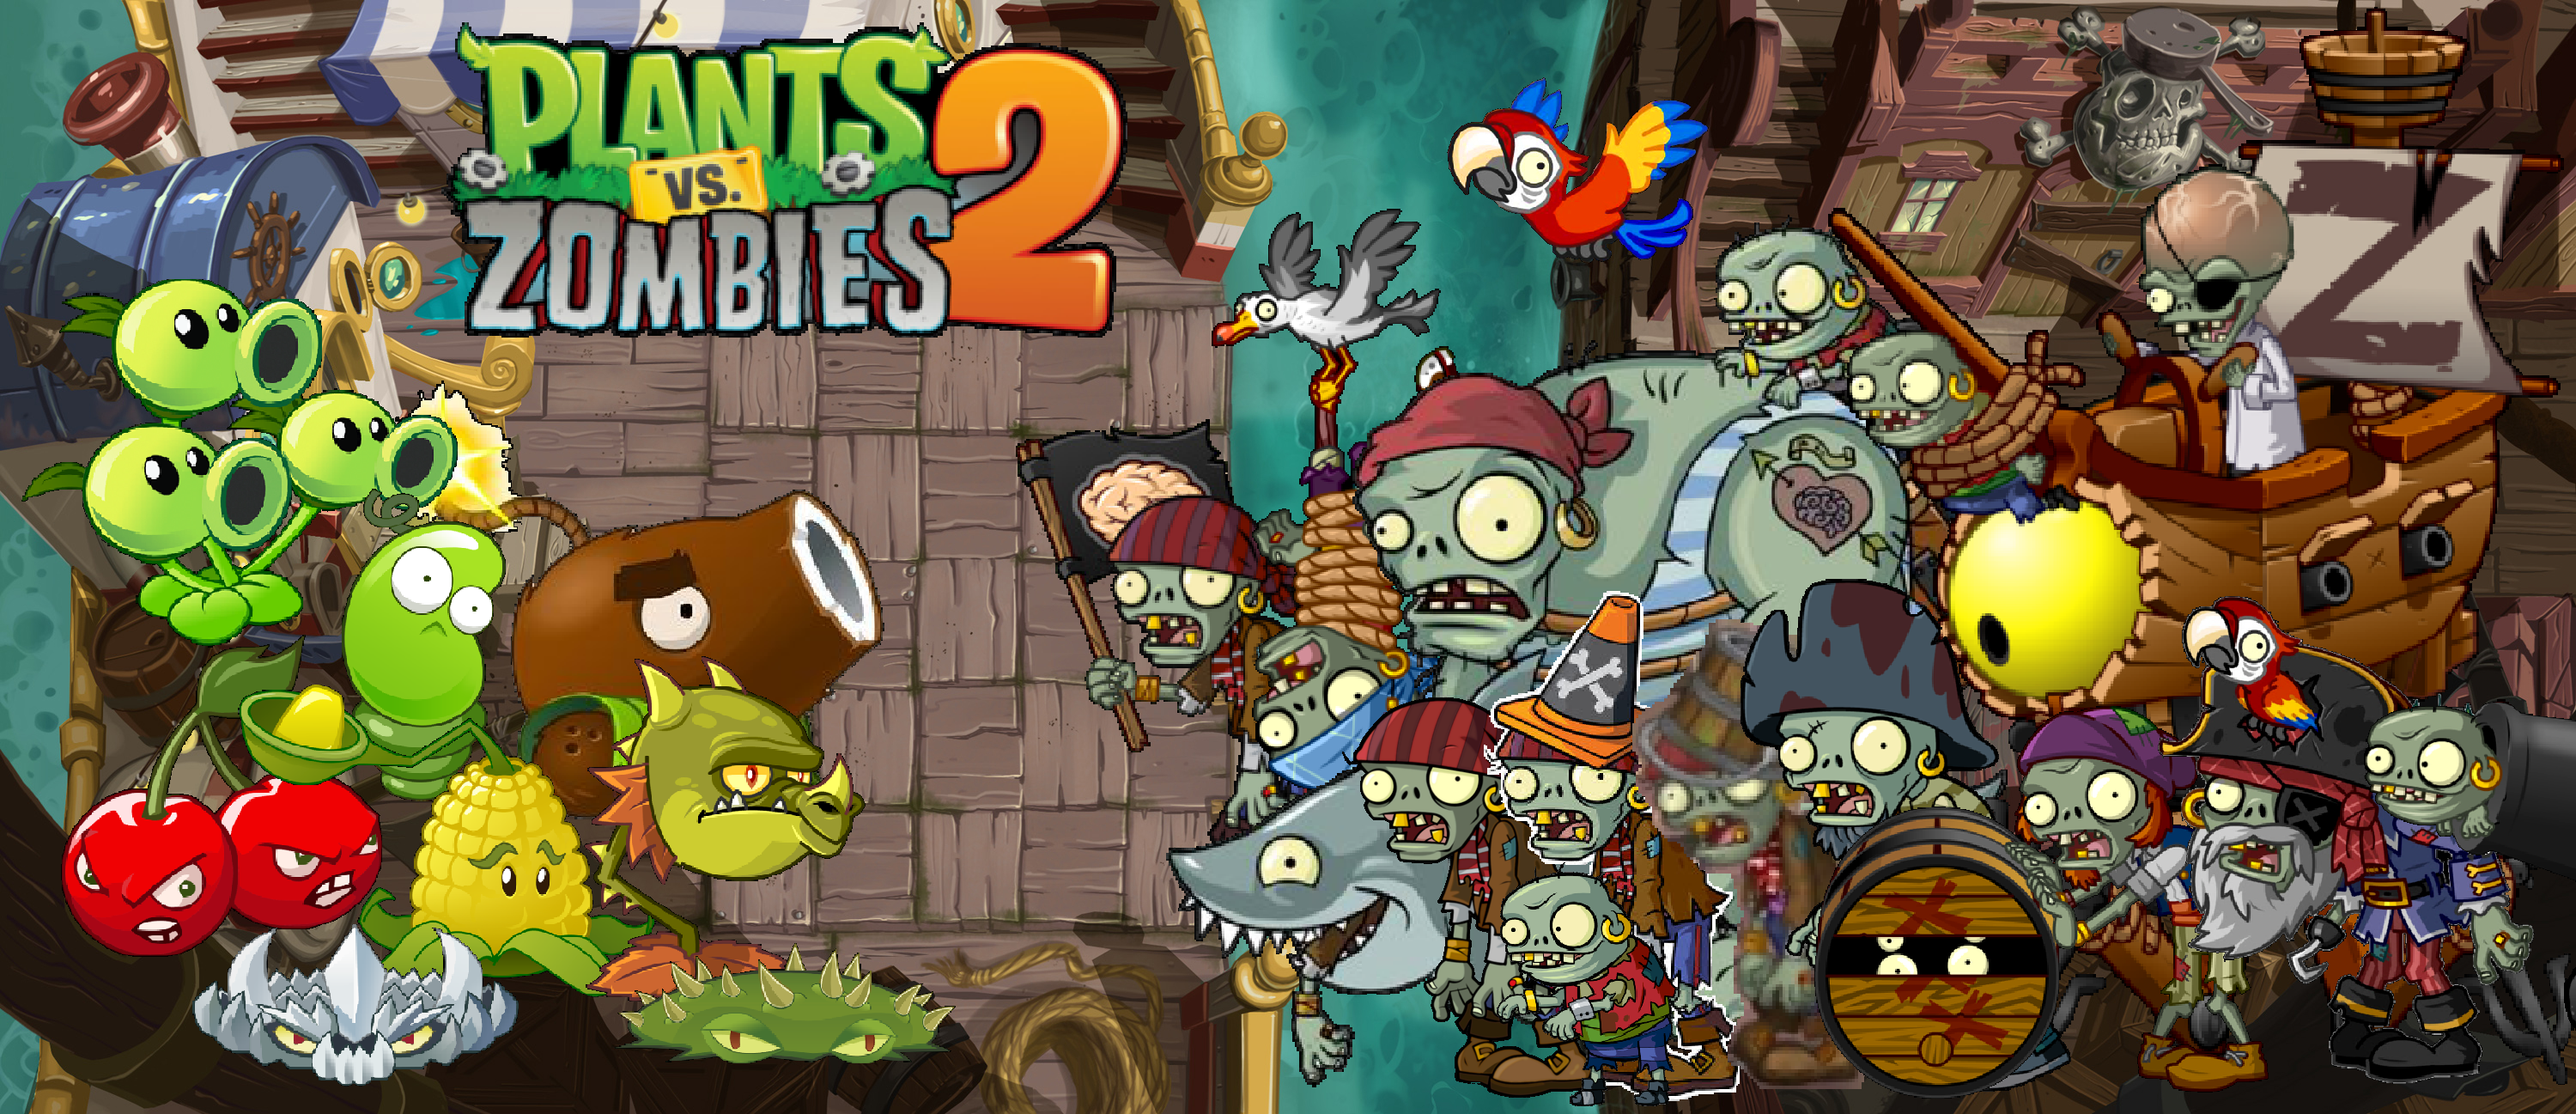 Plants vs Zombies 2 Pirate Seas Wallpaper by